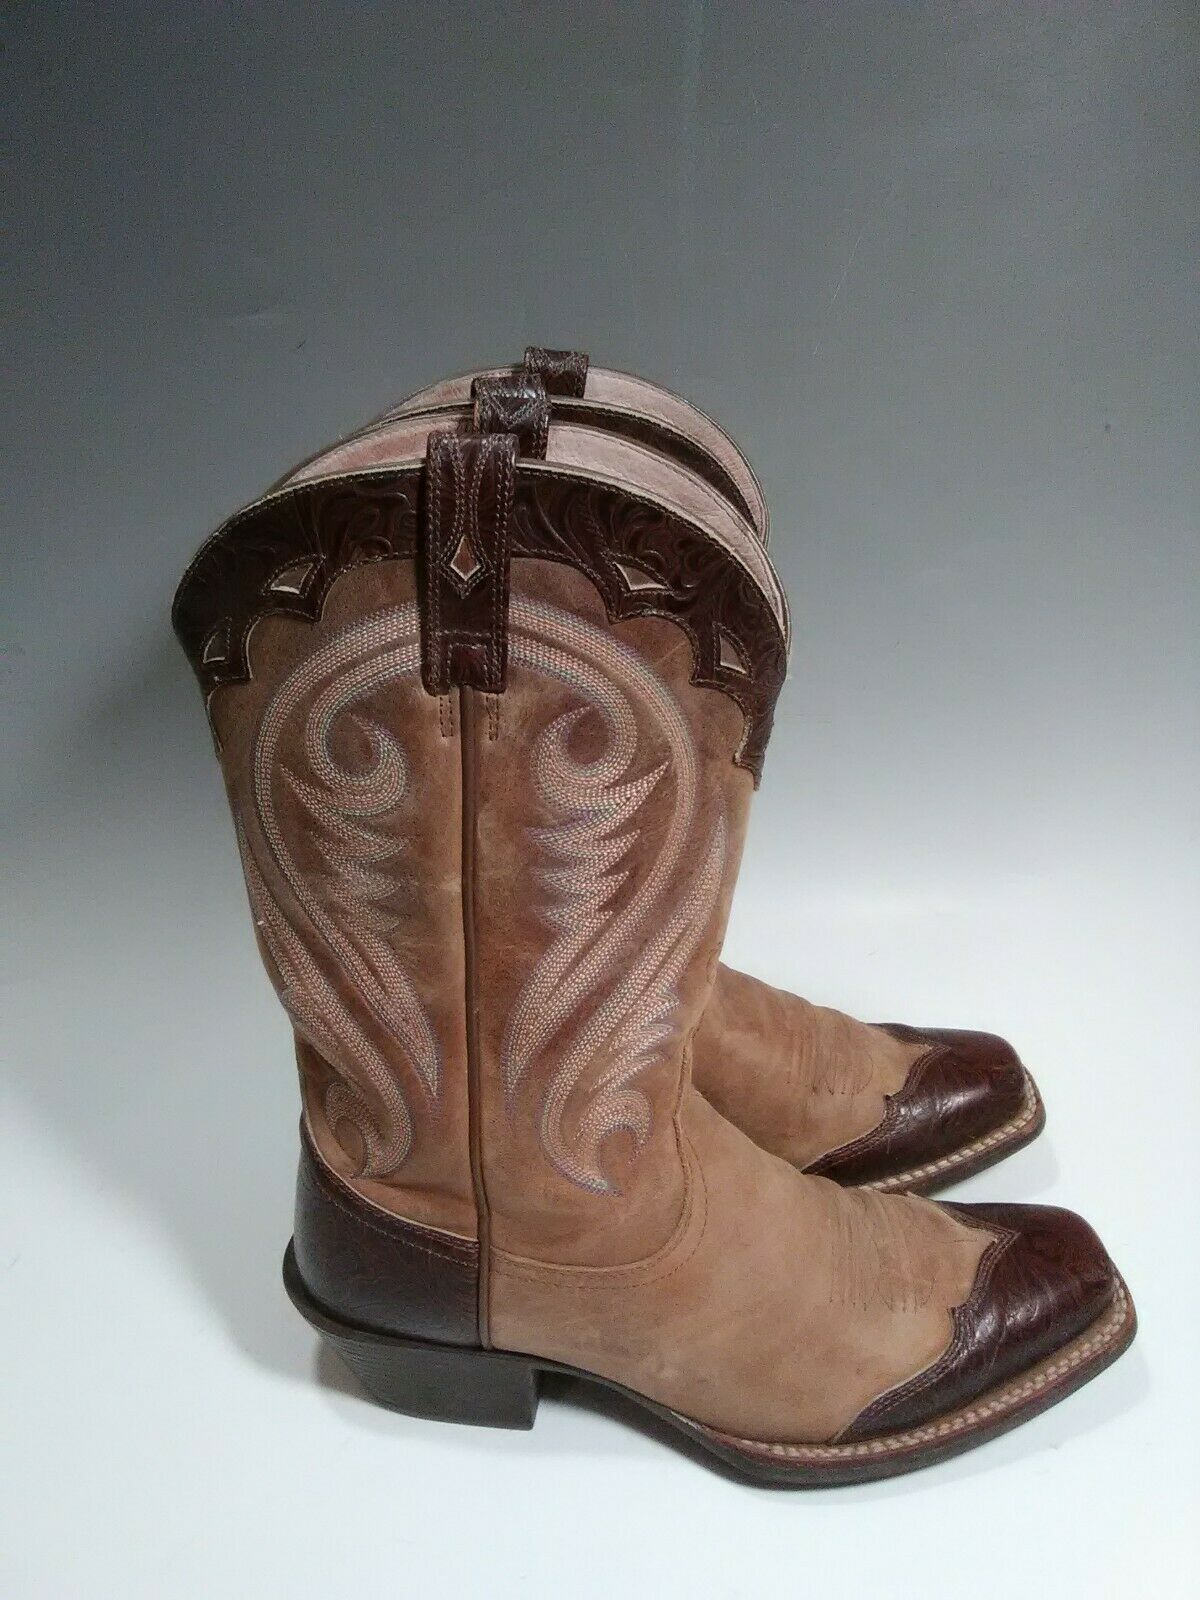 Ariat Auténtico Cuero Occidental Vaquera Bota de Montar Talla  15878 8.5 B Marrón